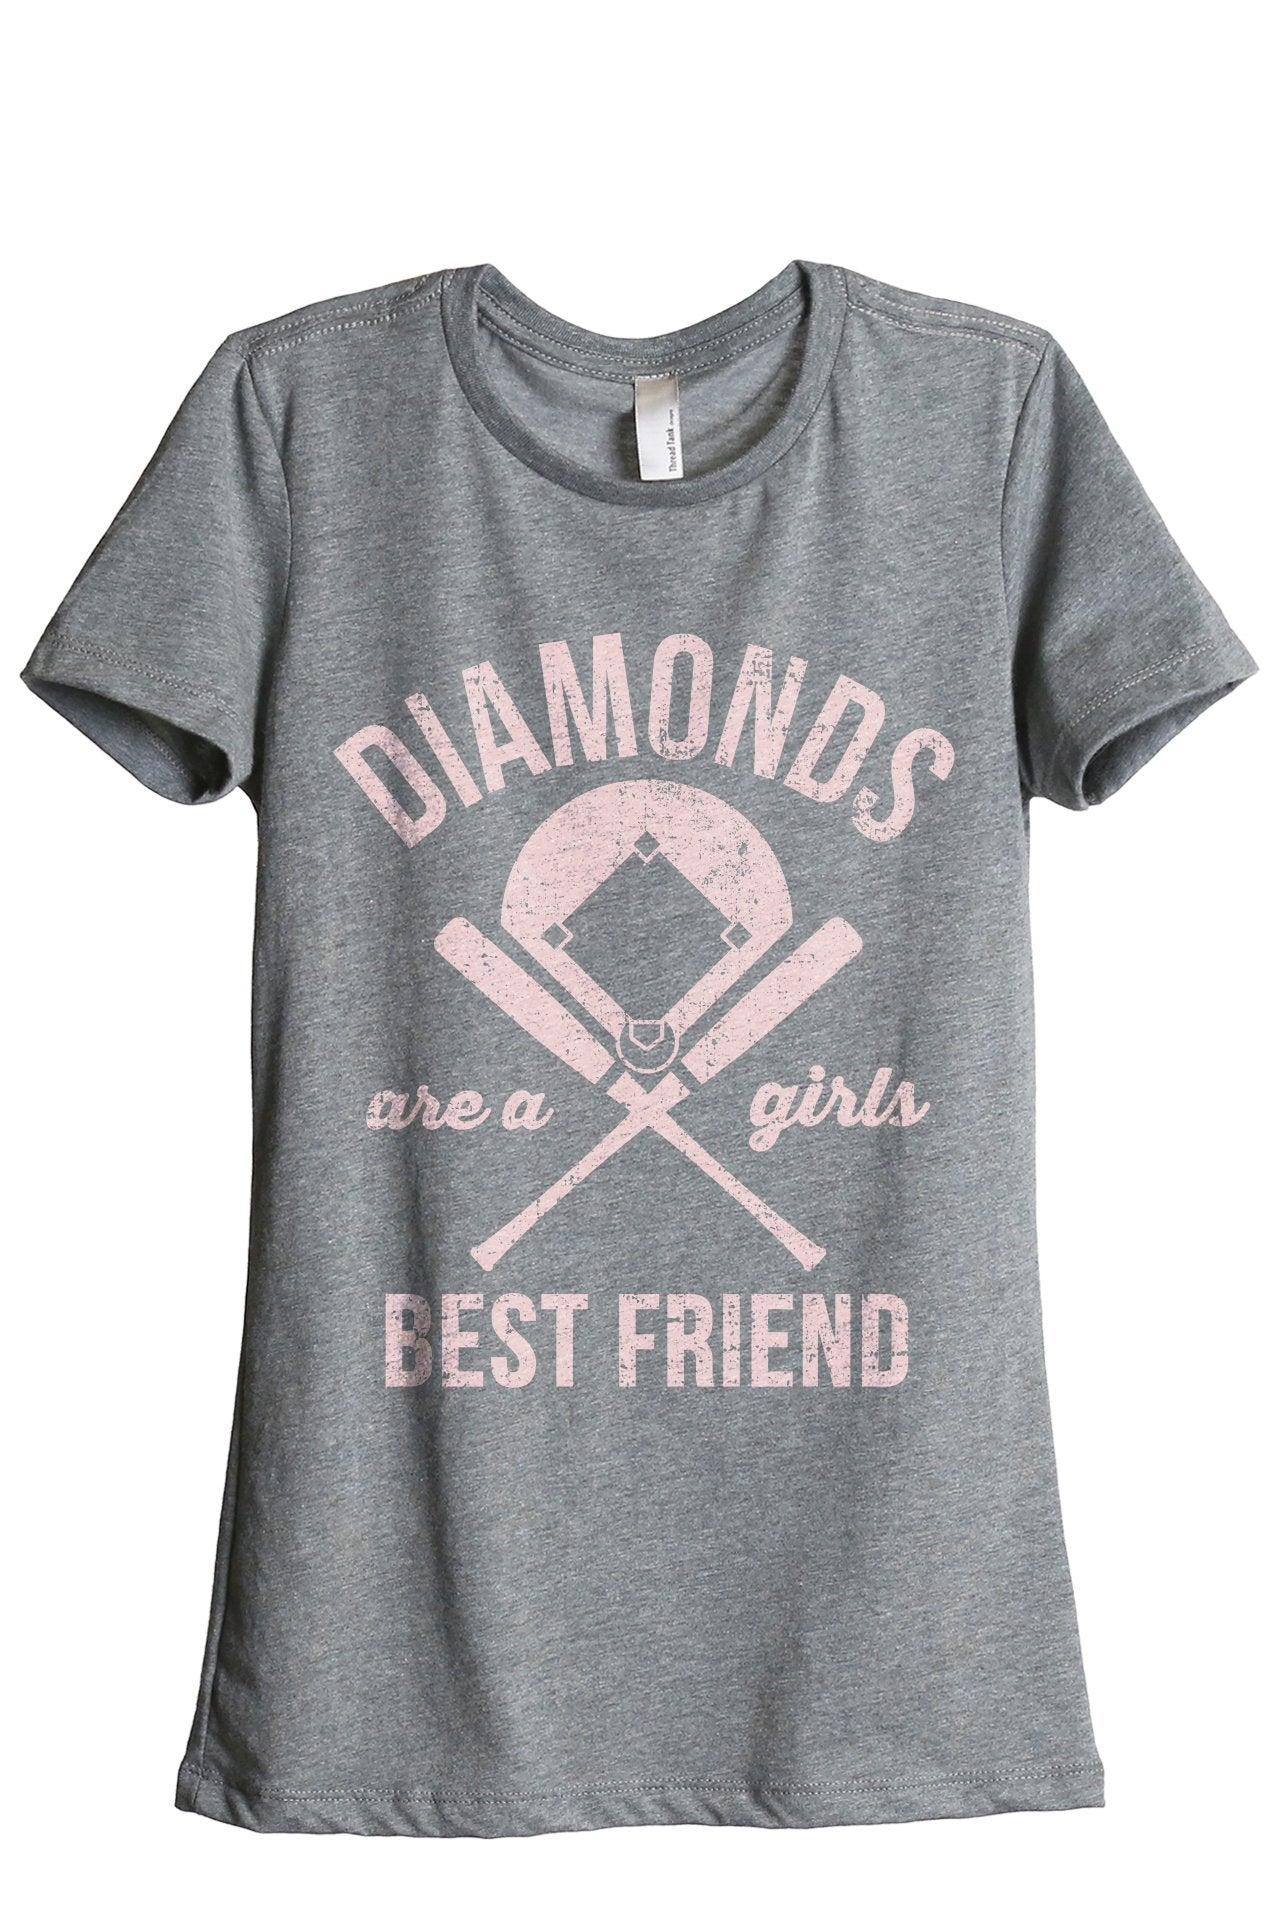 Diamonds Are A Girls Best Friend - Thread Tank | Stories You Can Wear | T-Shirts, Tank Tops and Sweatshirts